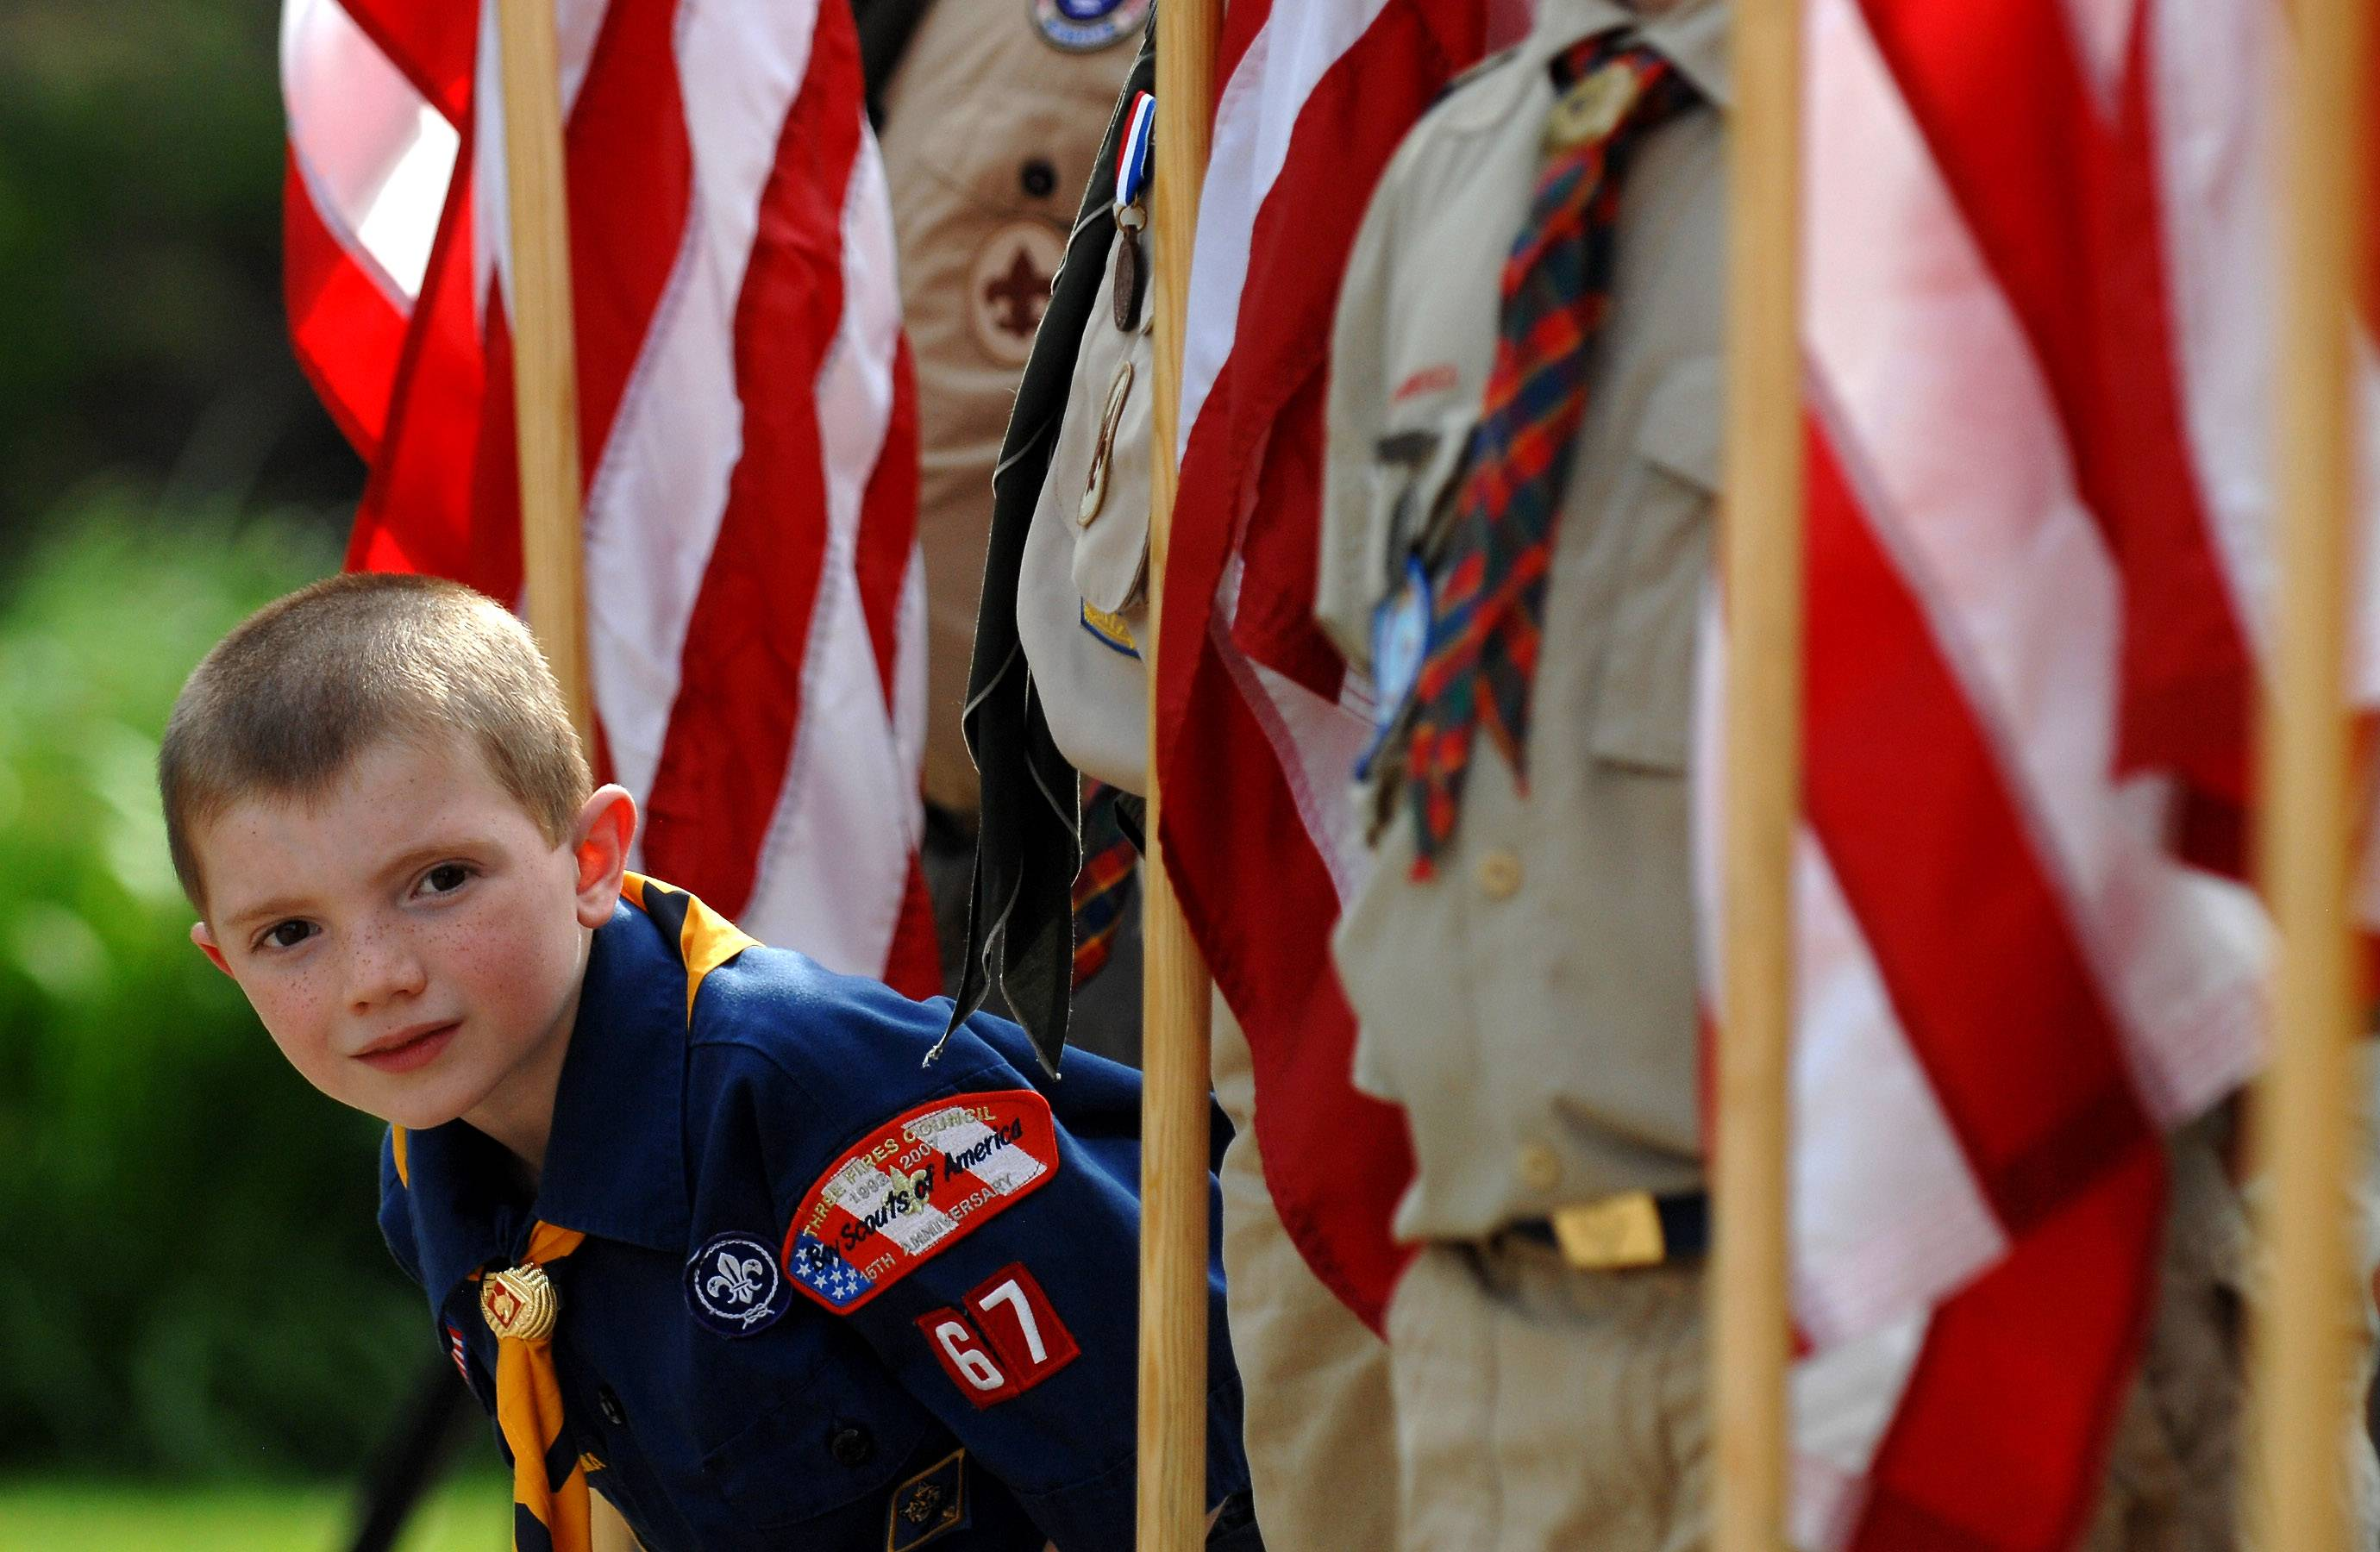 Cub Scout Keegan Carver, 7, of Elgin Pack 67, peeks out at the row of flags during a previous Elgin Flag Day ceremony.